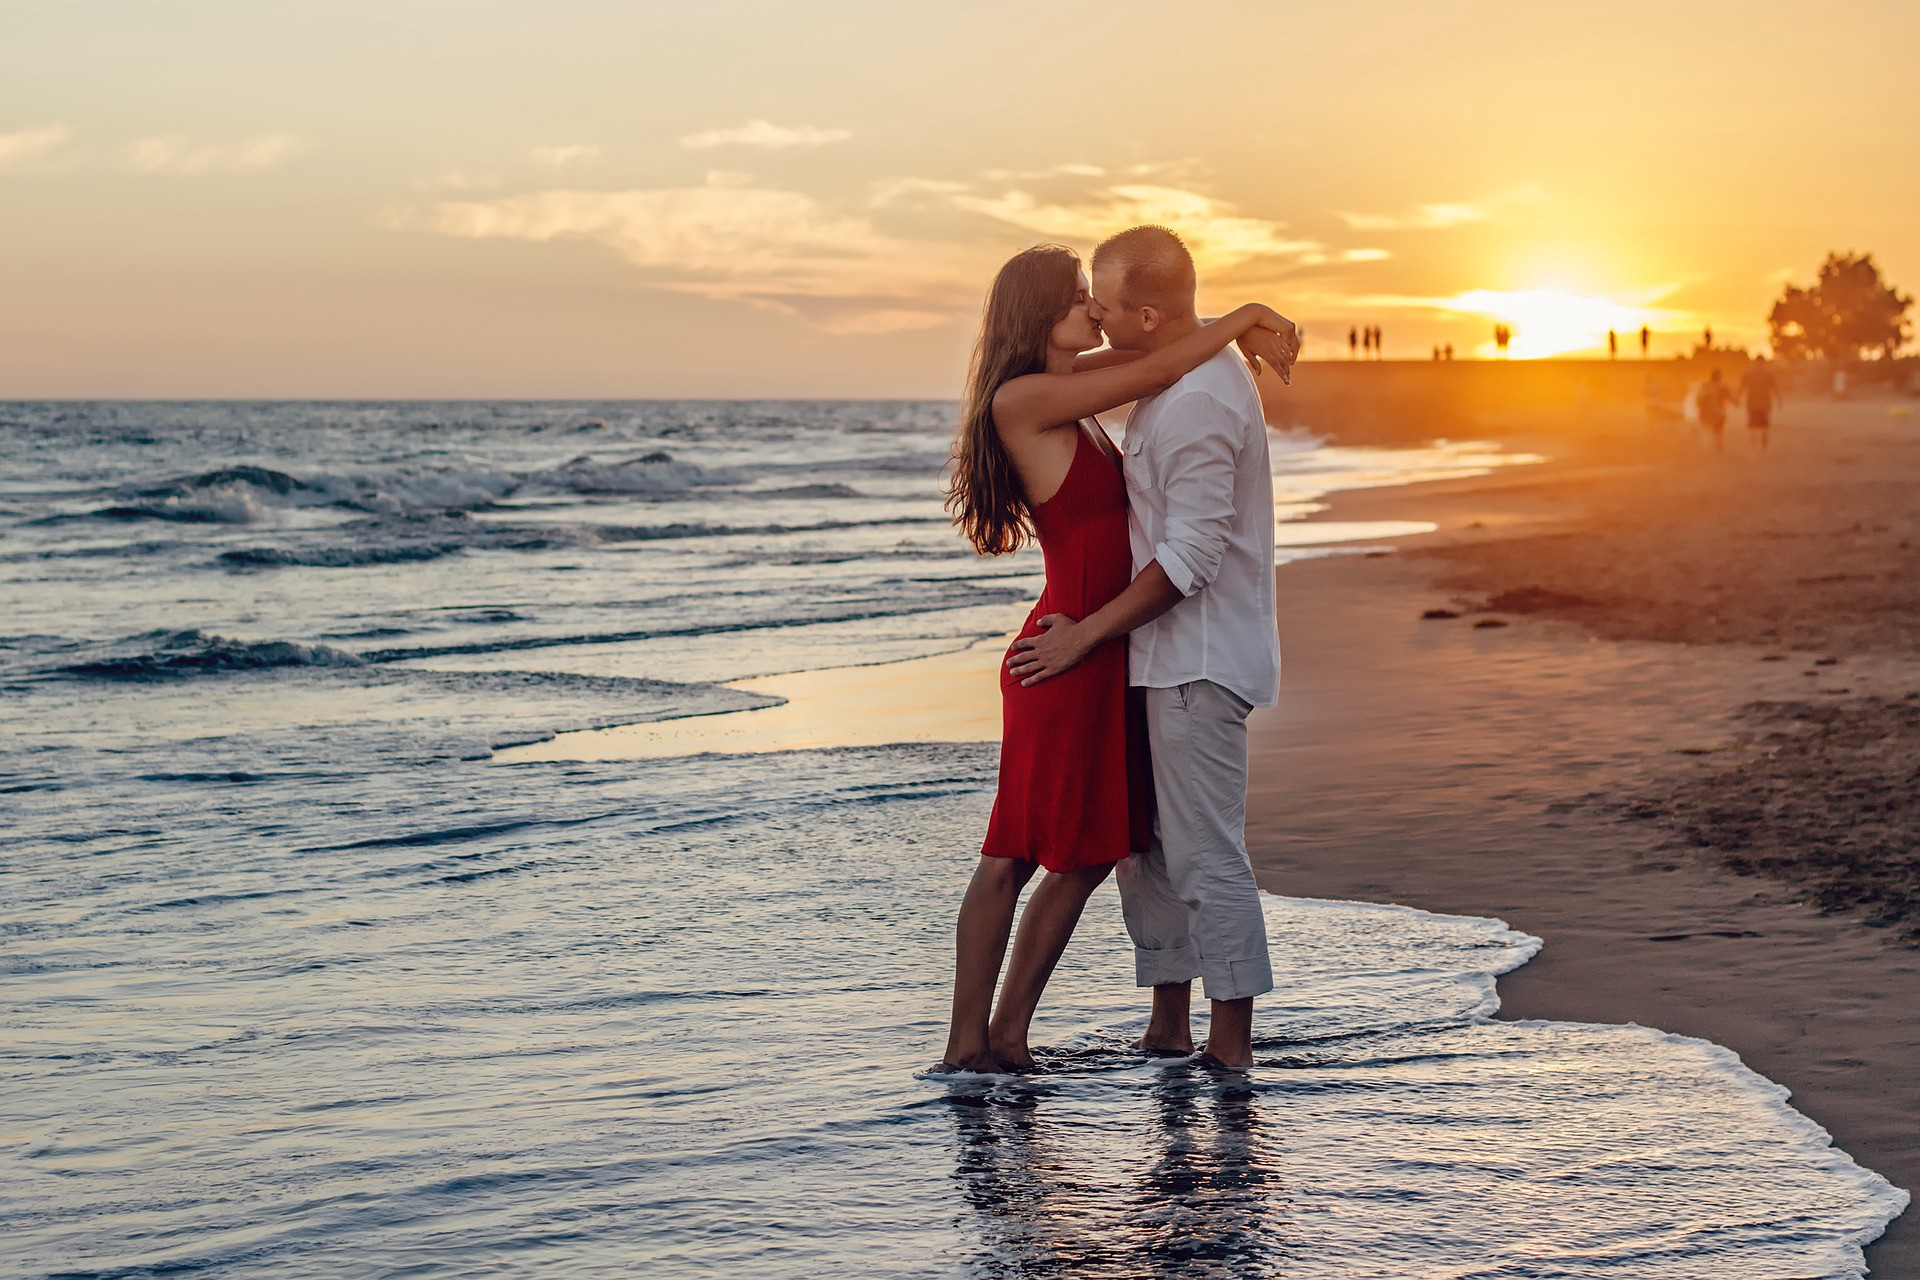 young man and woman kissing for the first time on a beach standing in the surf while the sun sets